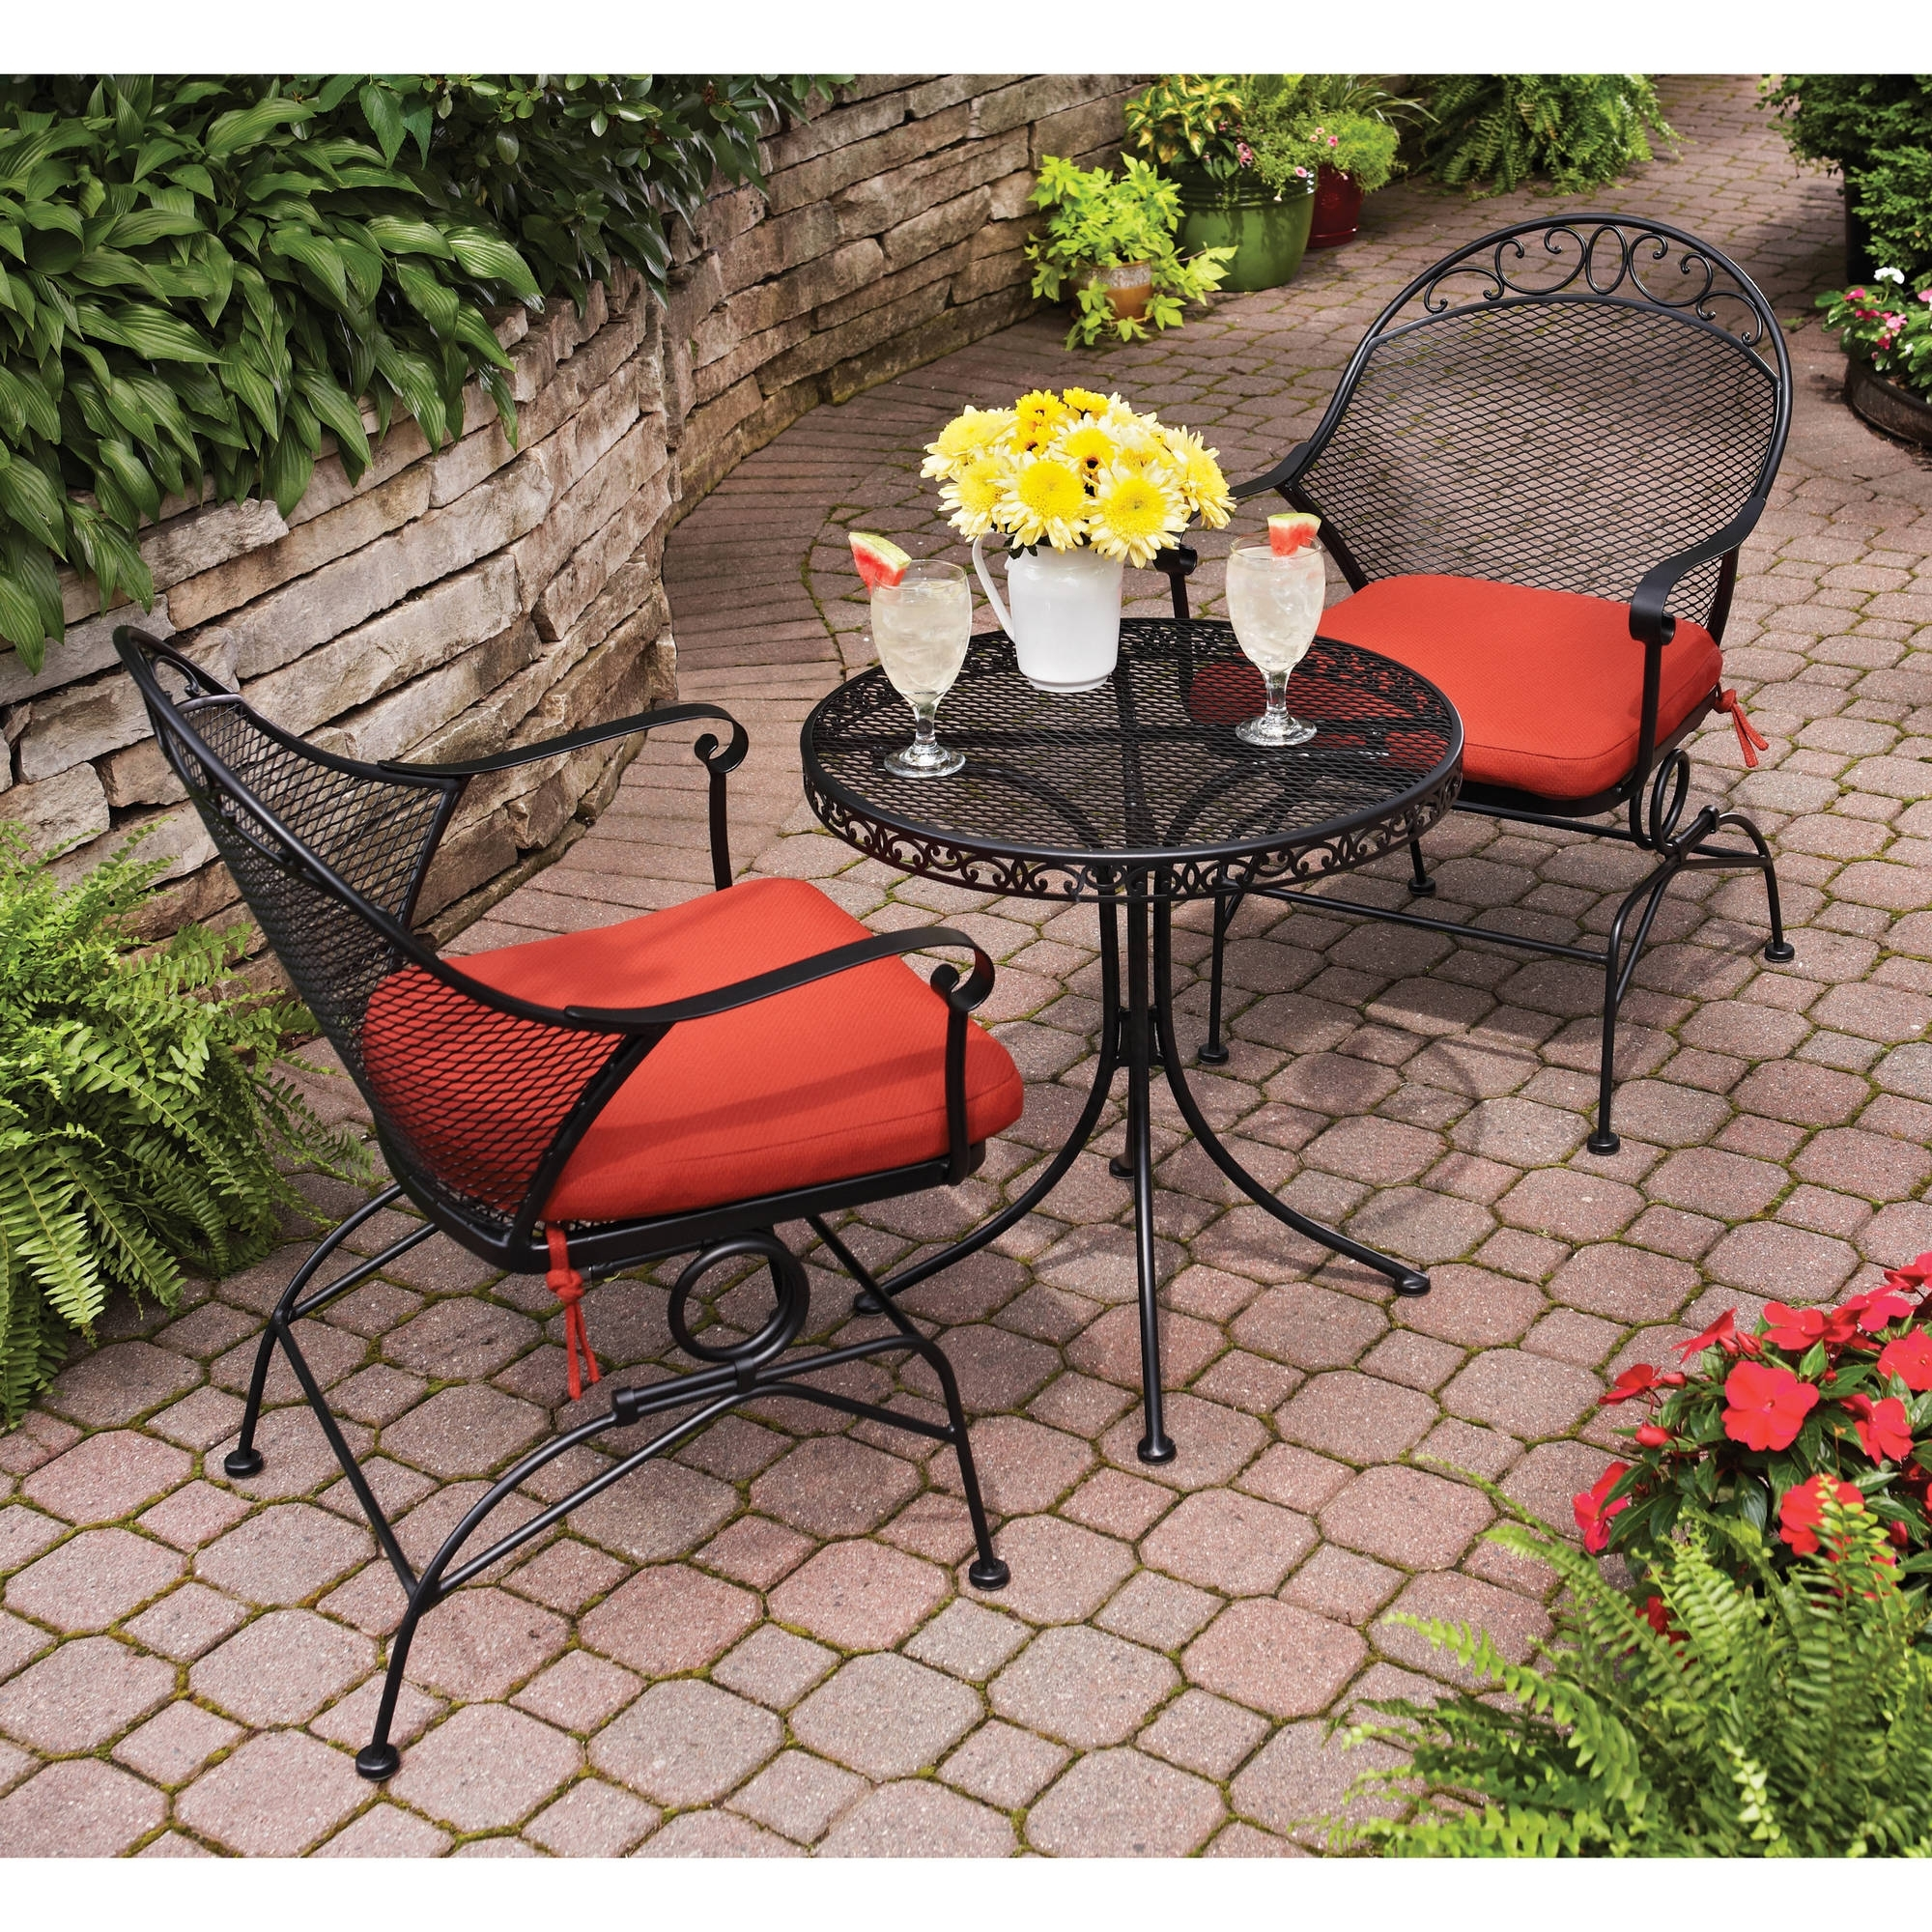 Exterior Outdoor Seat Cushions Clearance And Walmart Patio Cushions Regarding Red Outdoor Seat Cushions Red Outdoor Seat Cushions Set For Patio